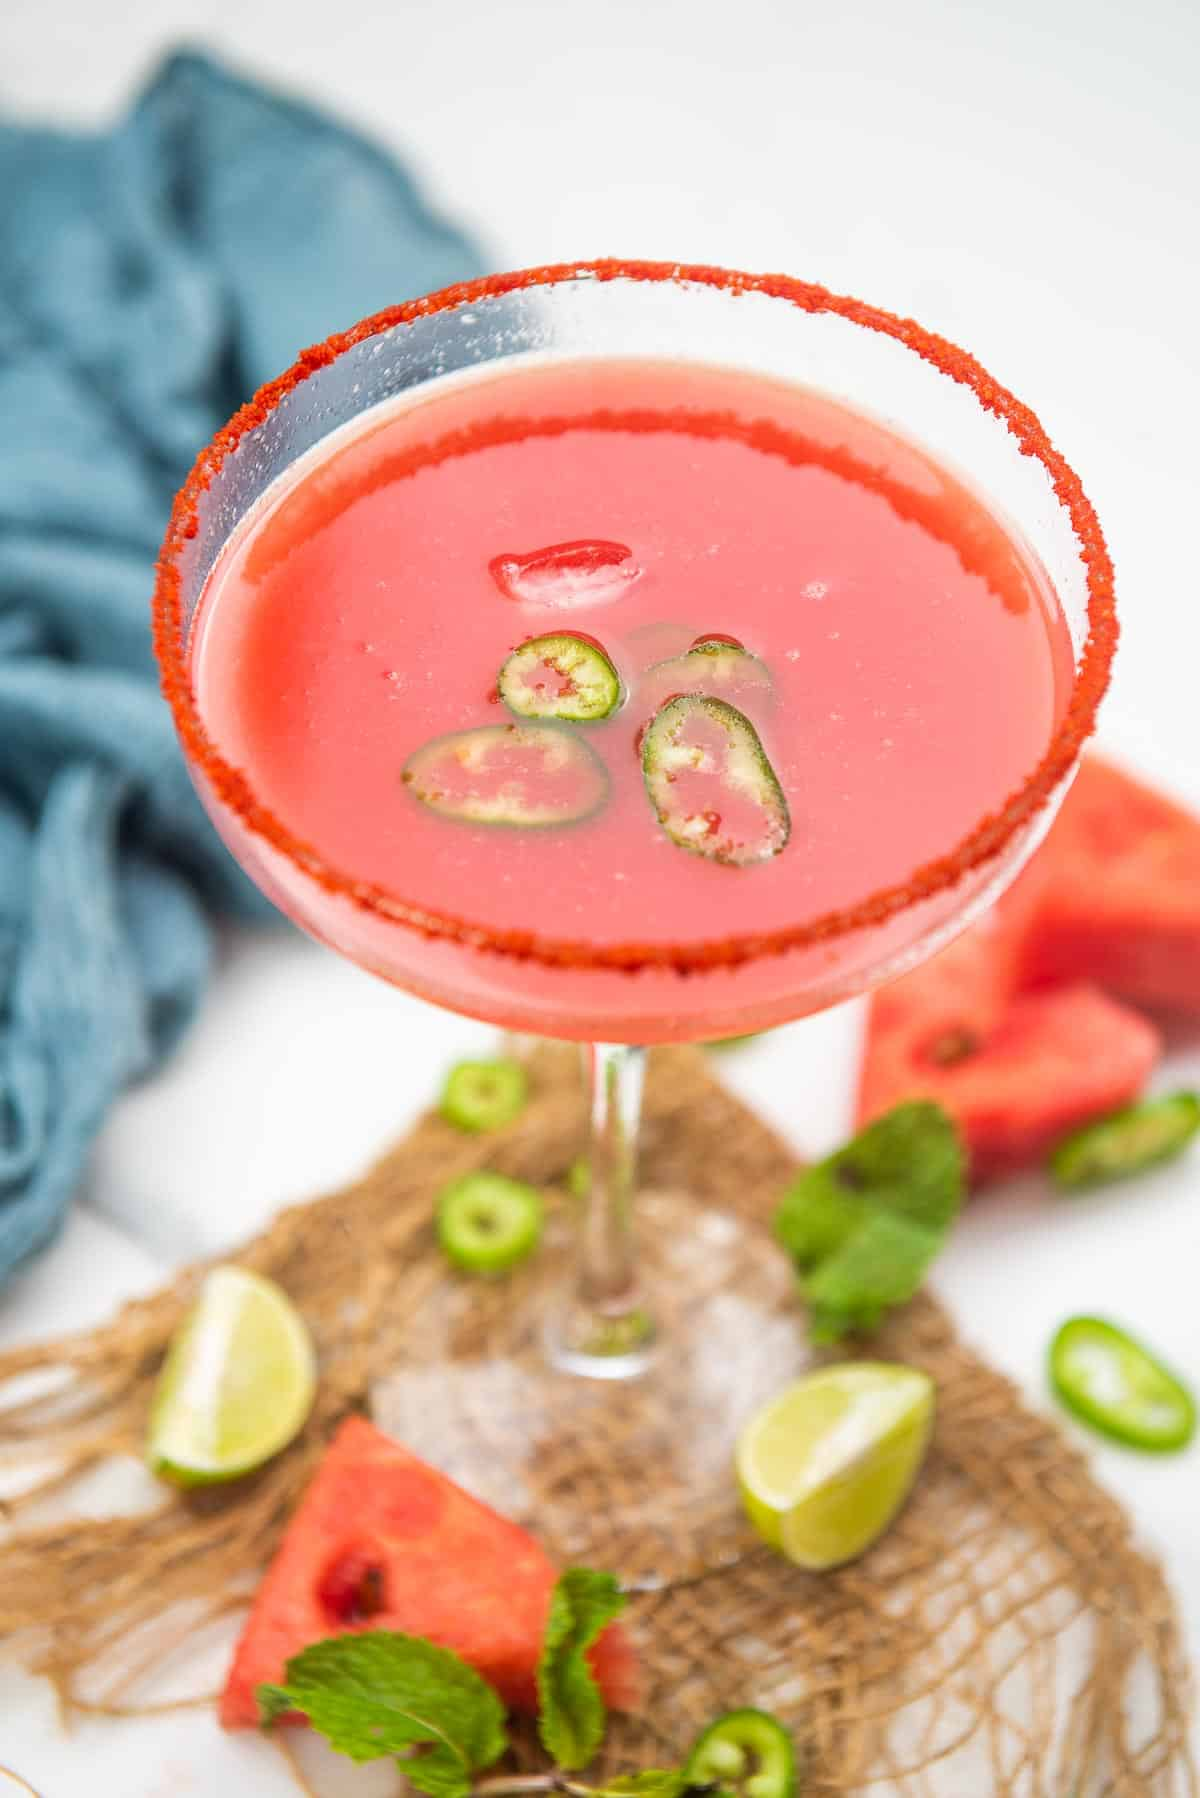 Spicy watermelon margarita served in a glass.